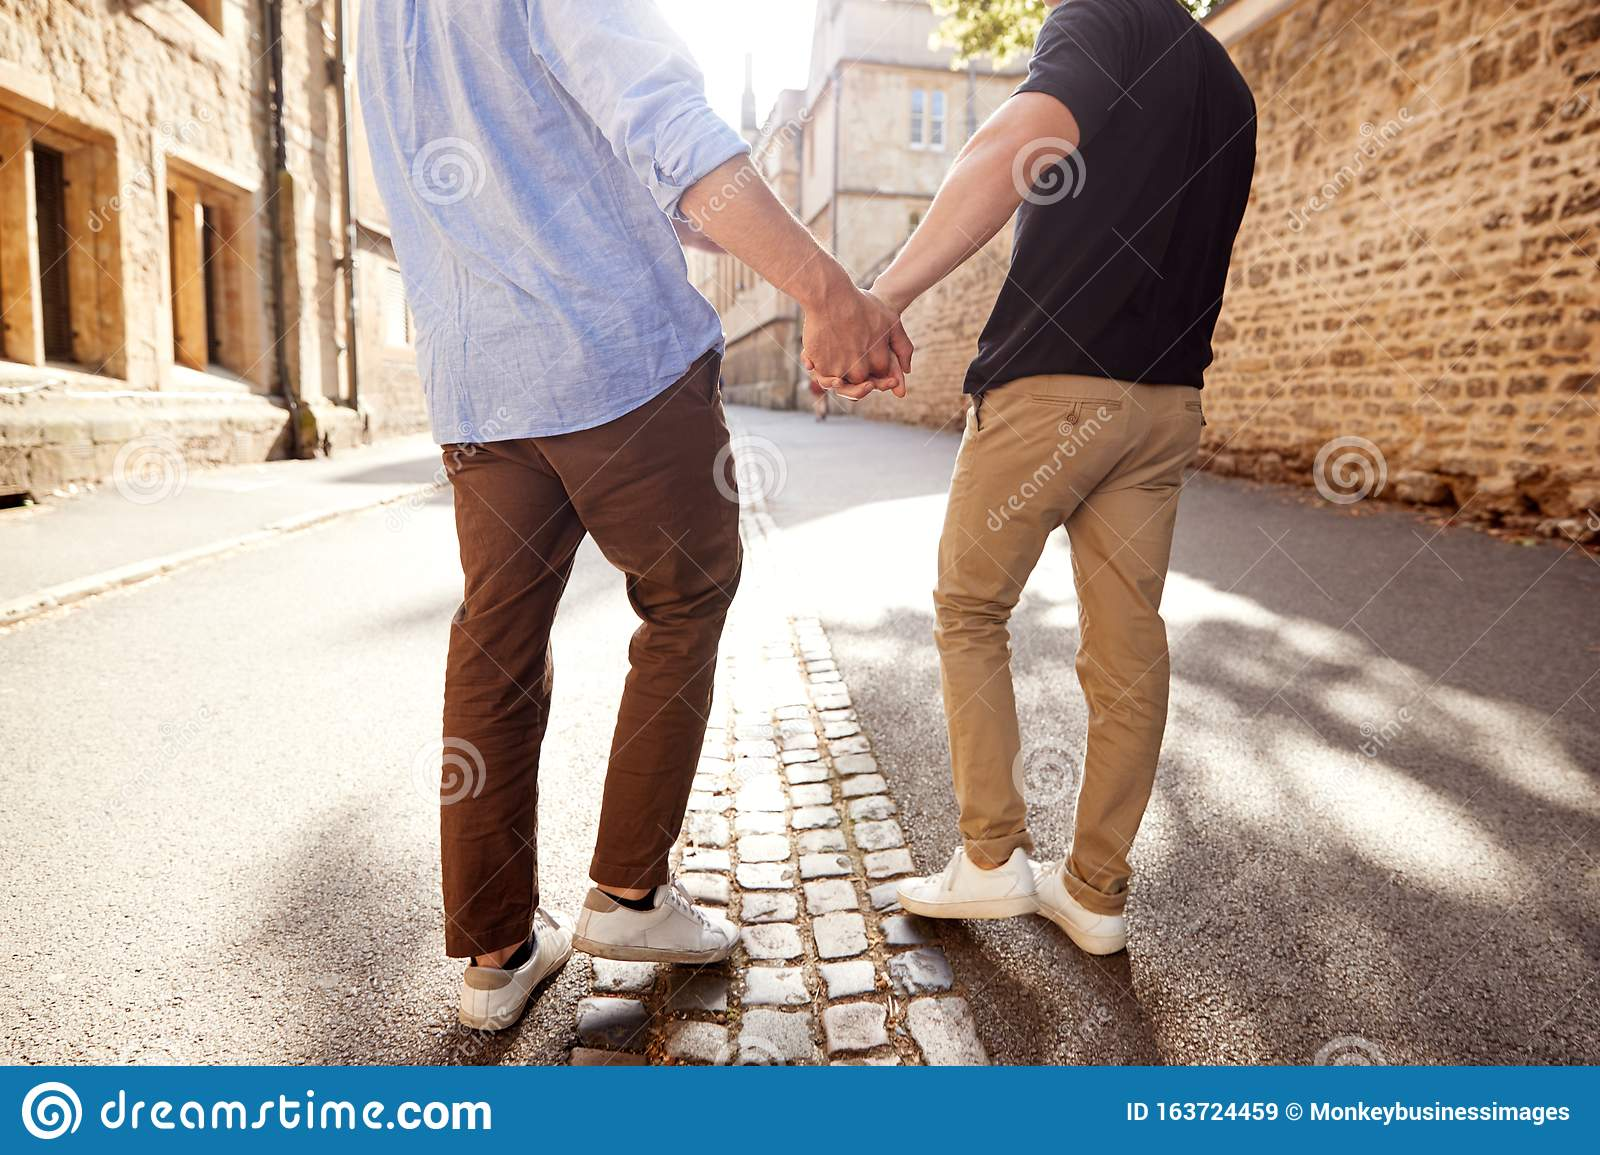 Gay hookup places in sandy